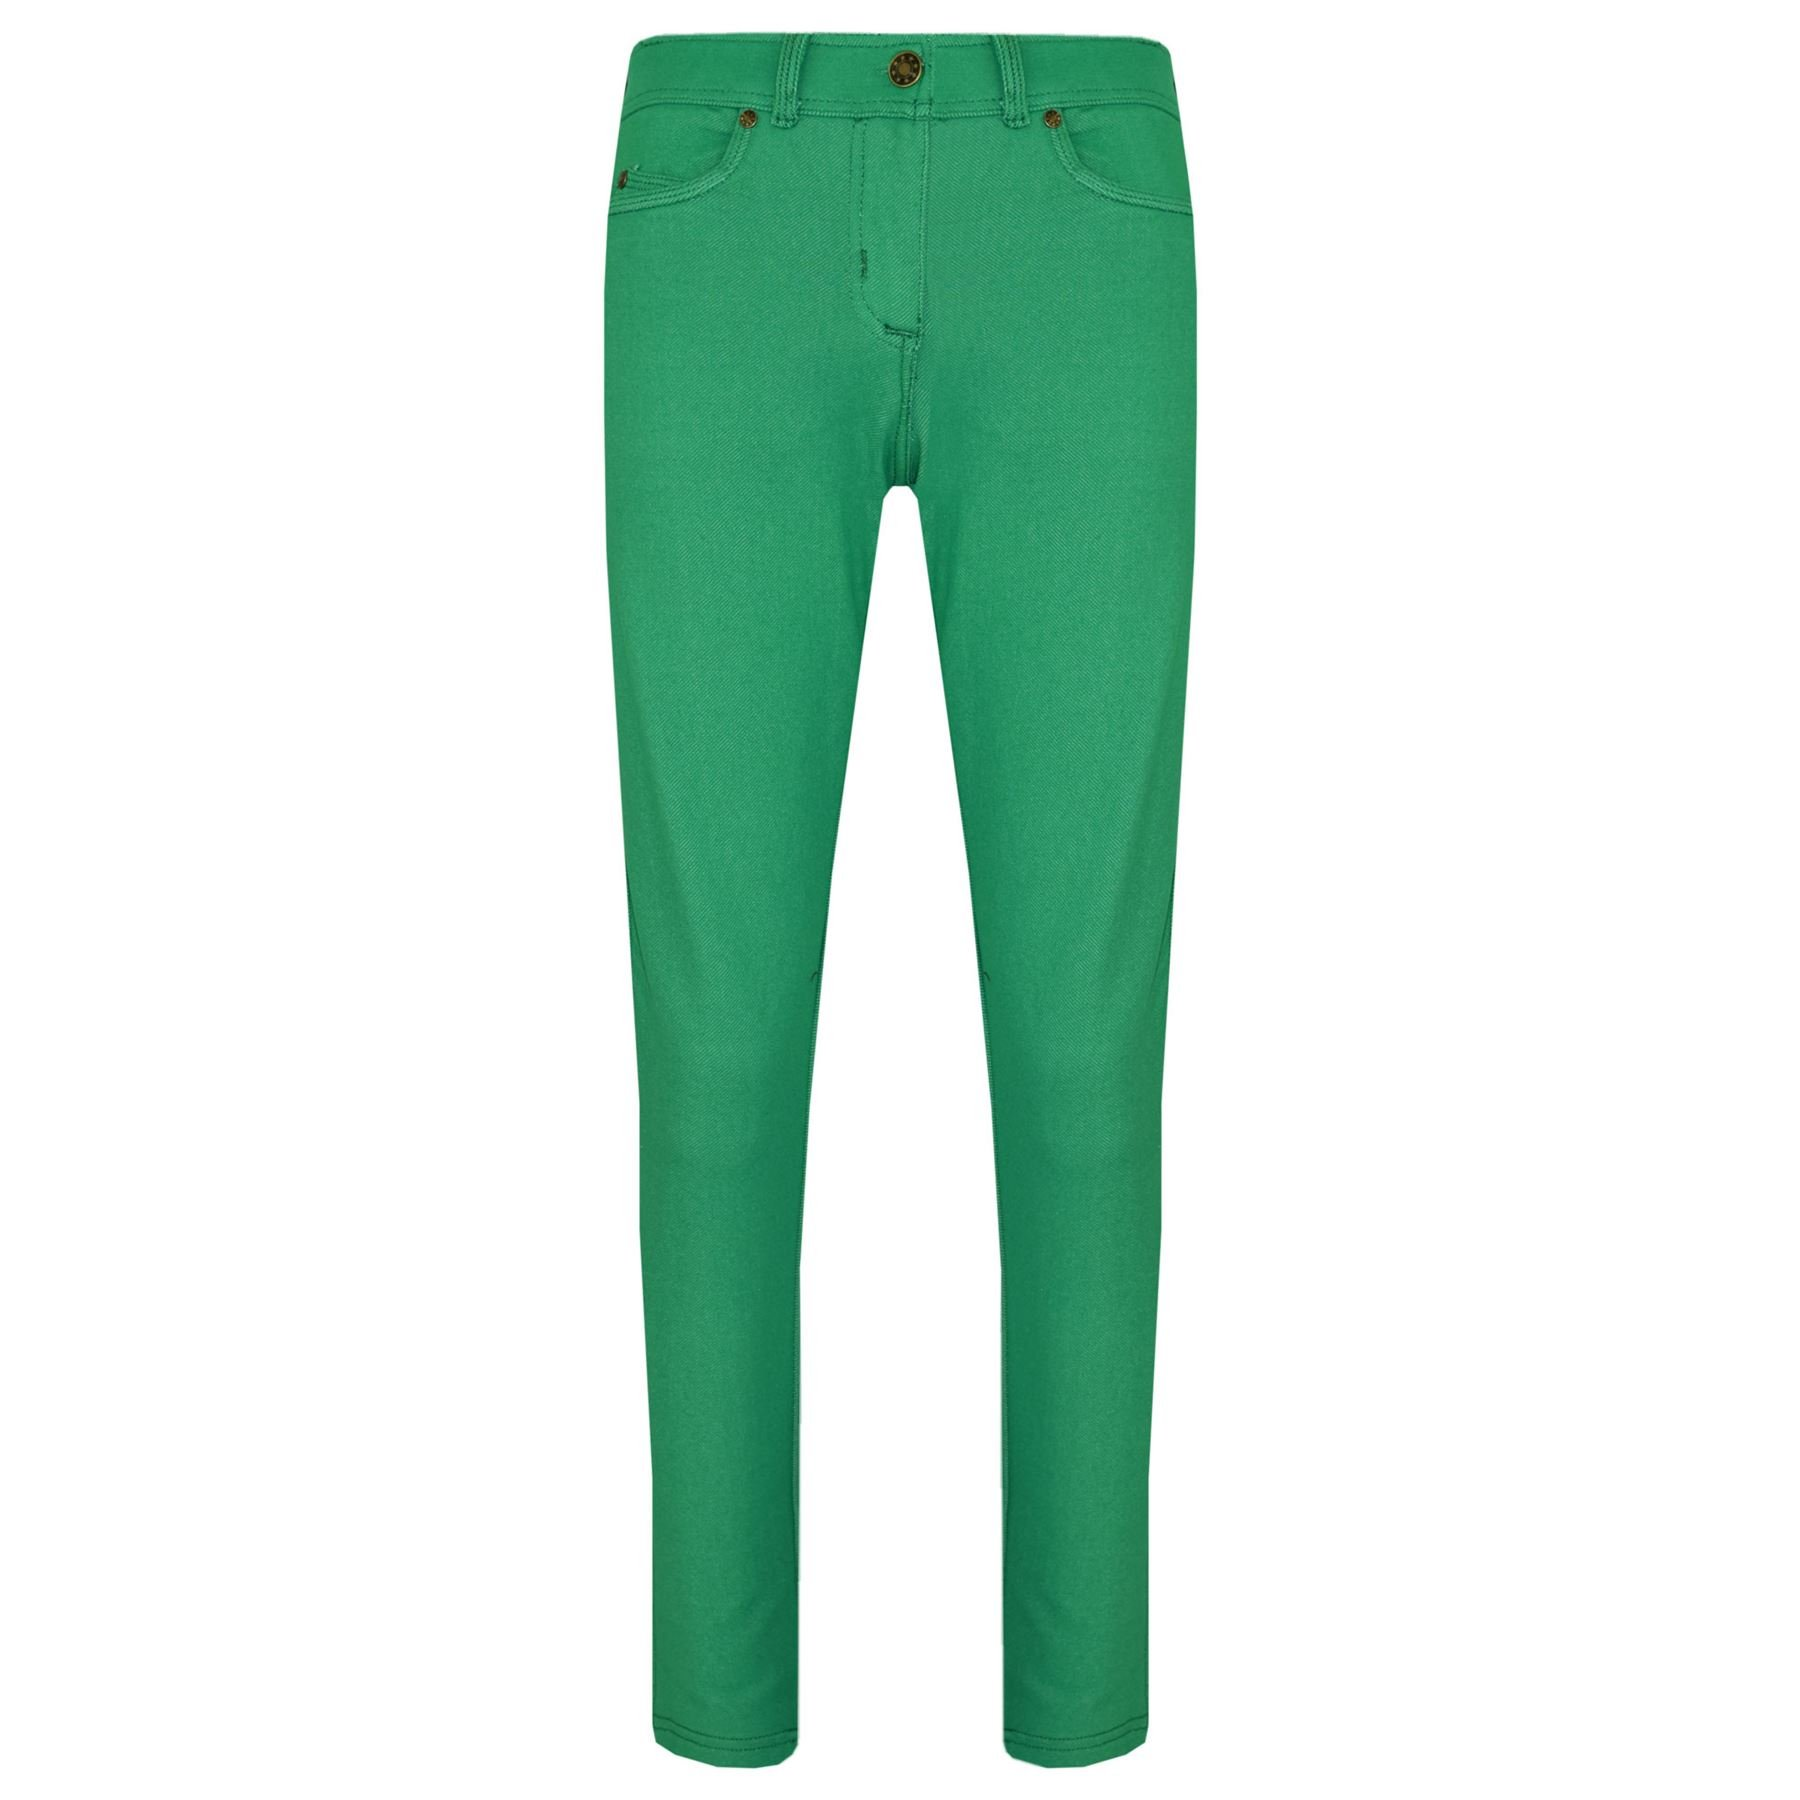 Kids Skinny Jeans Girls Stretchy Jeggings Fit Pants Coloured Trousers 5-13 Years